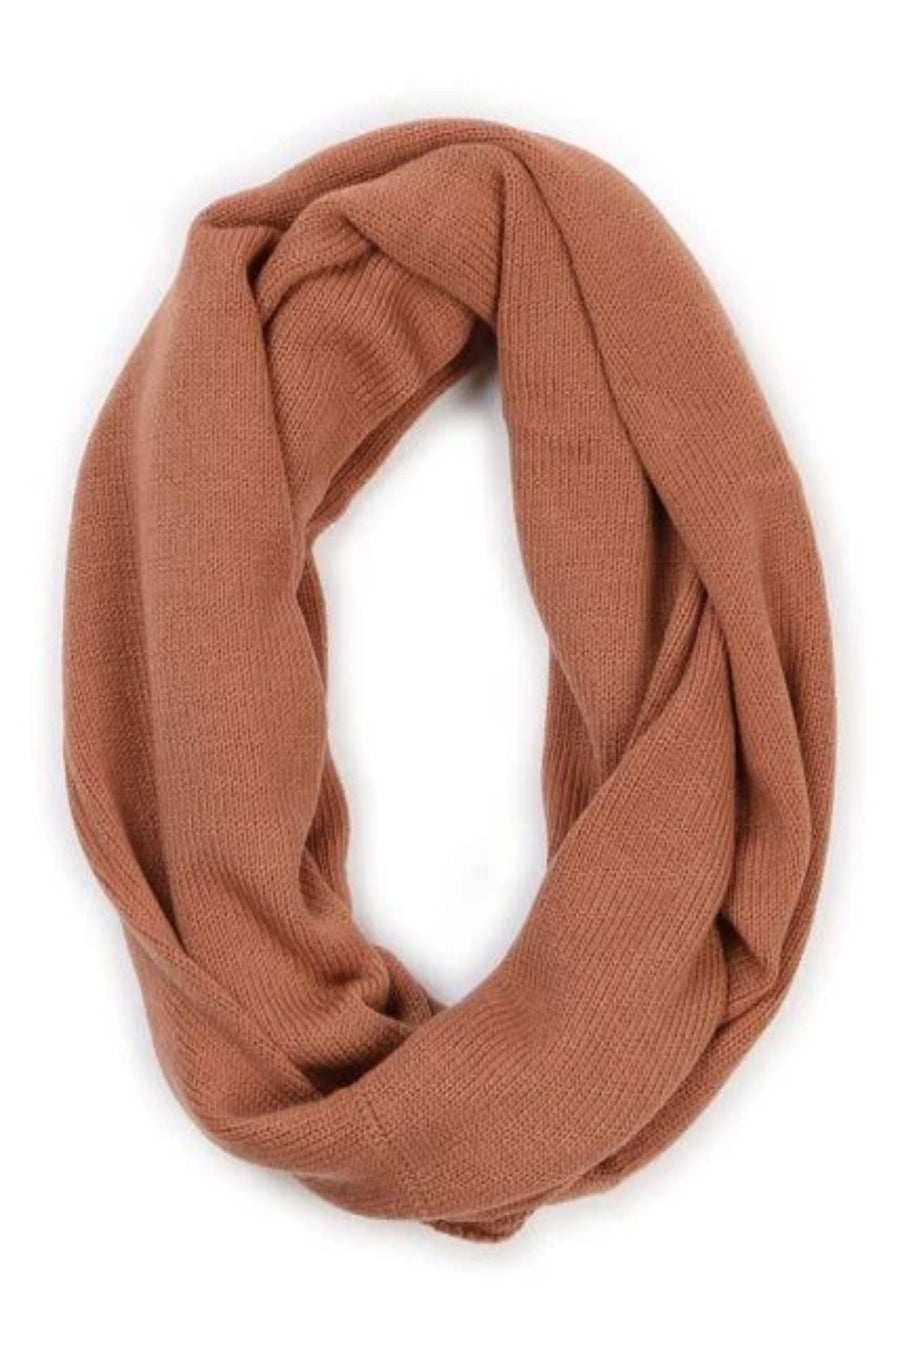 Jasmine Jersey Infinity Scarf in Butterscotch - Shop Online At Mookah - mookah.com.au